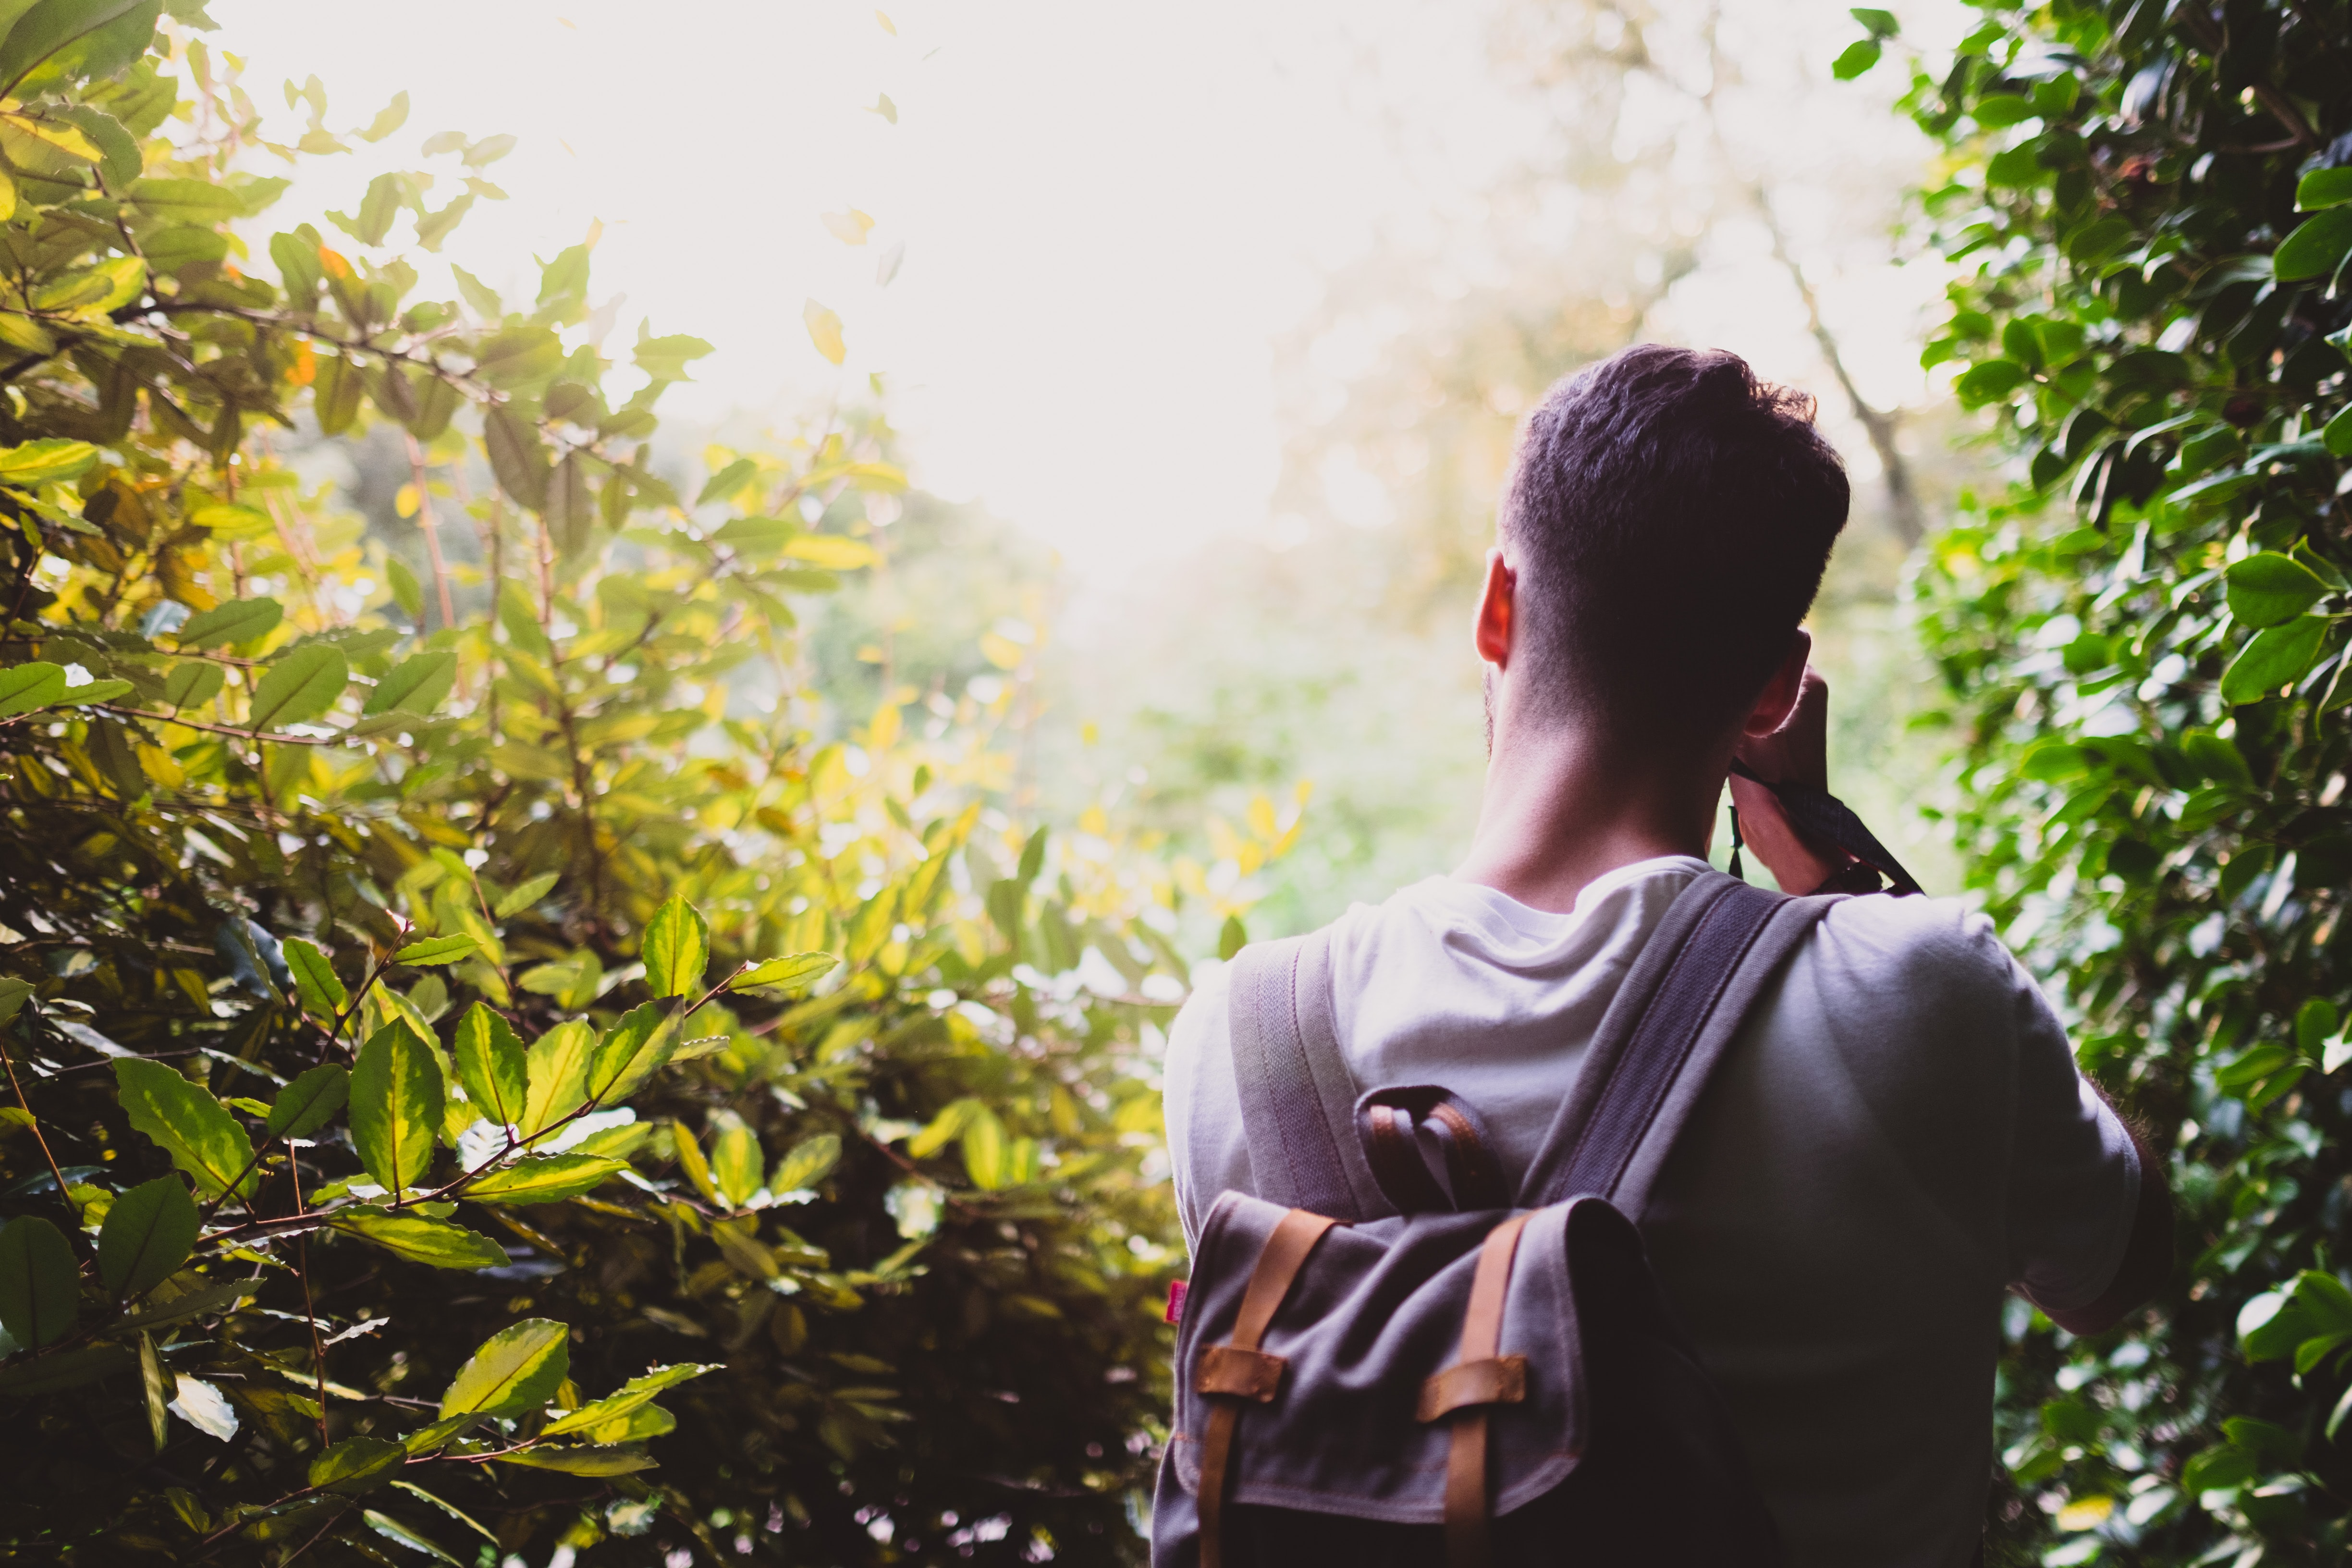 man carrying gray backpack between green leafed plant